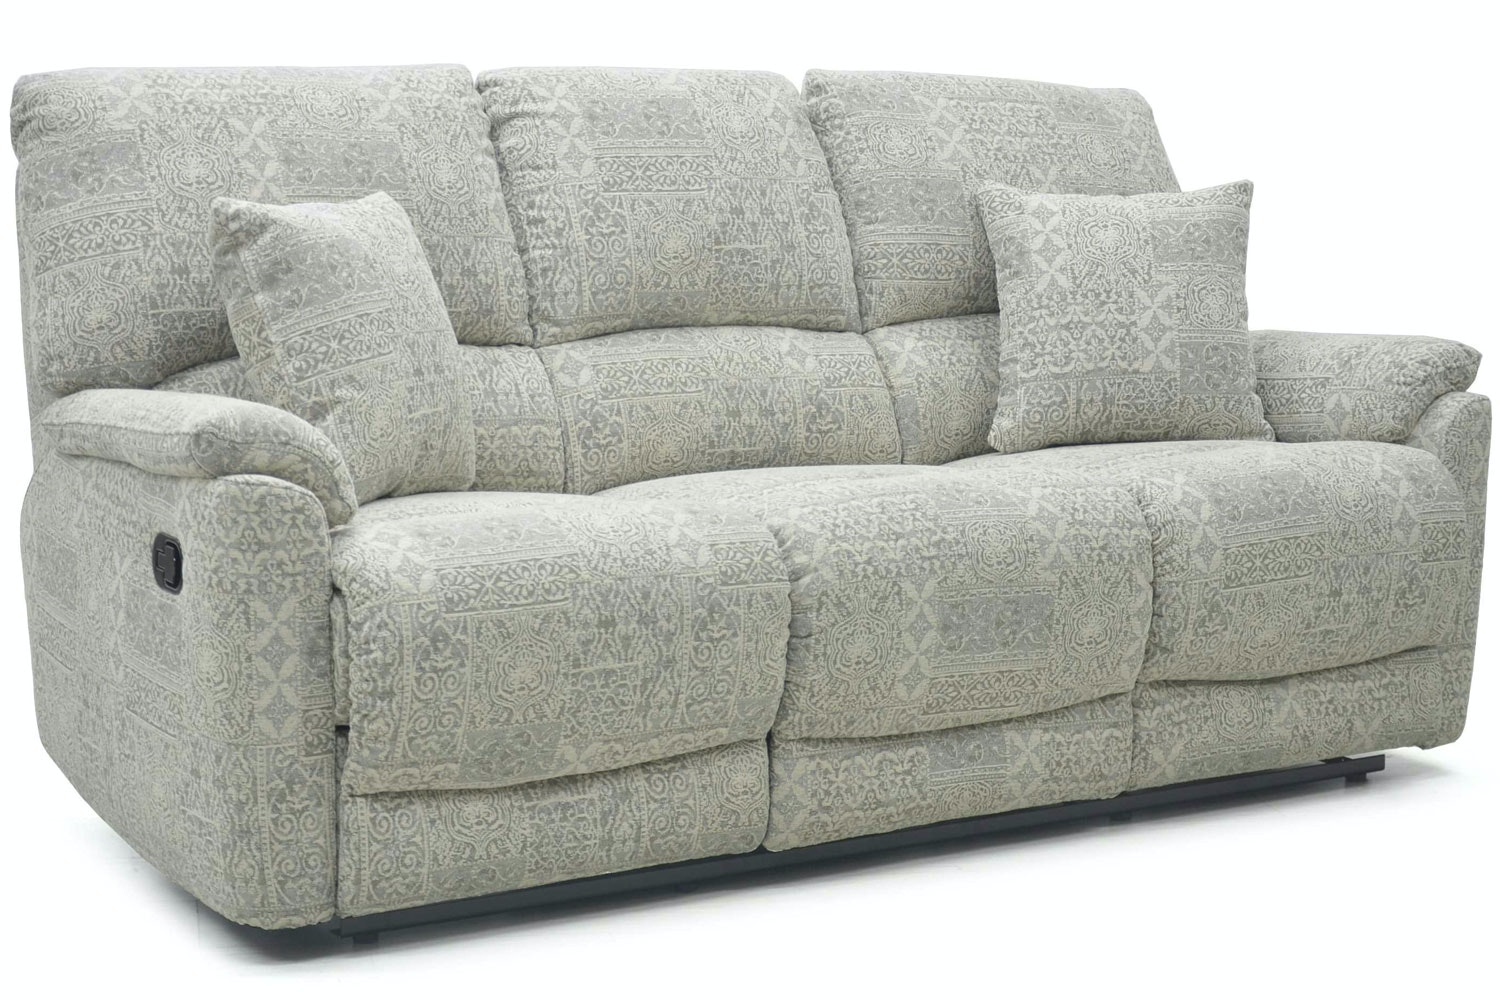 Nemo 3 Seater Fabric Sofa